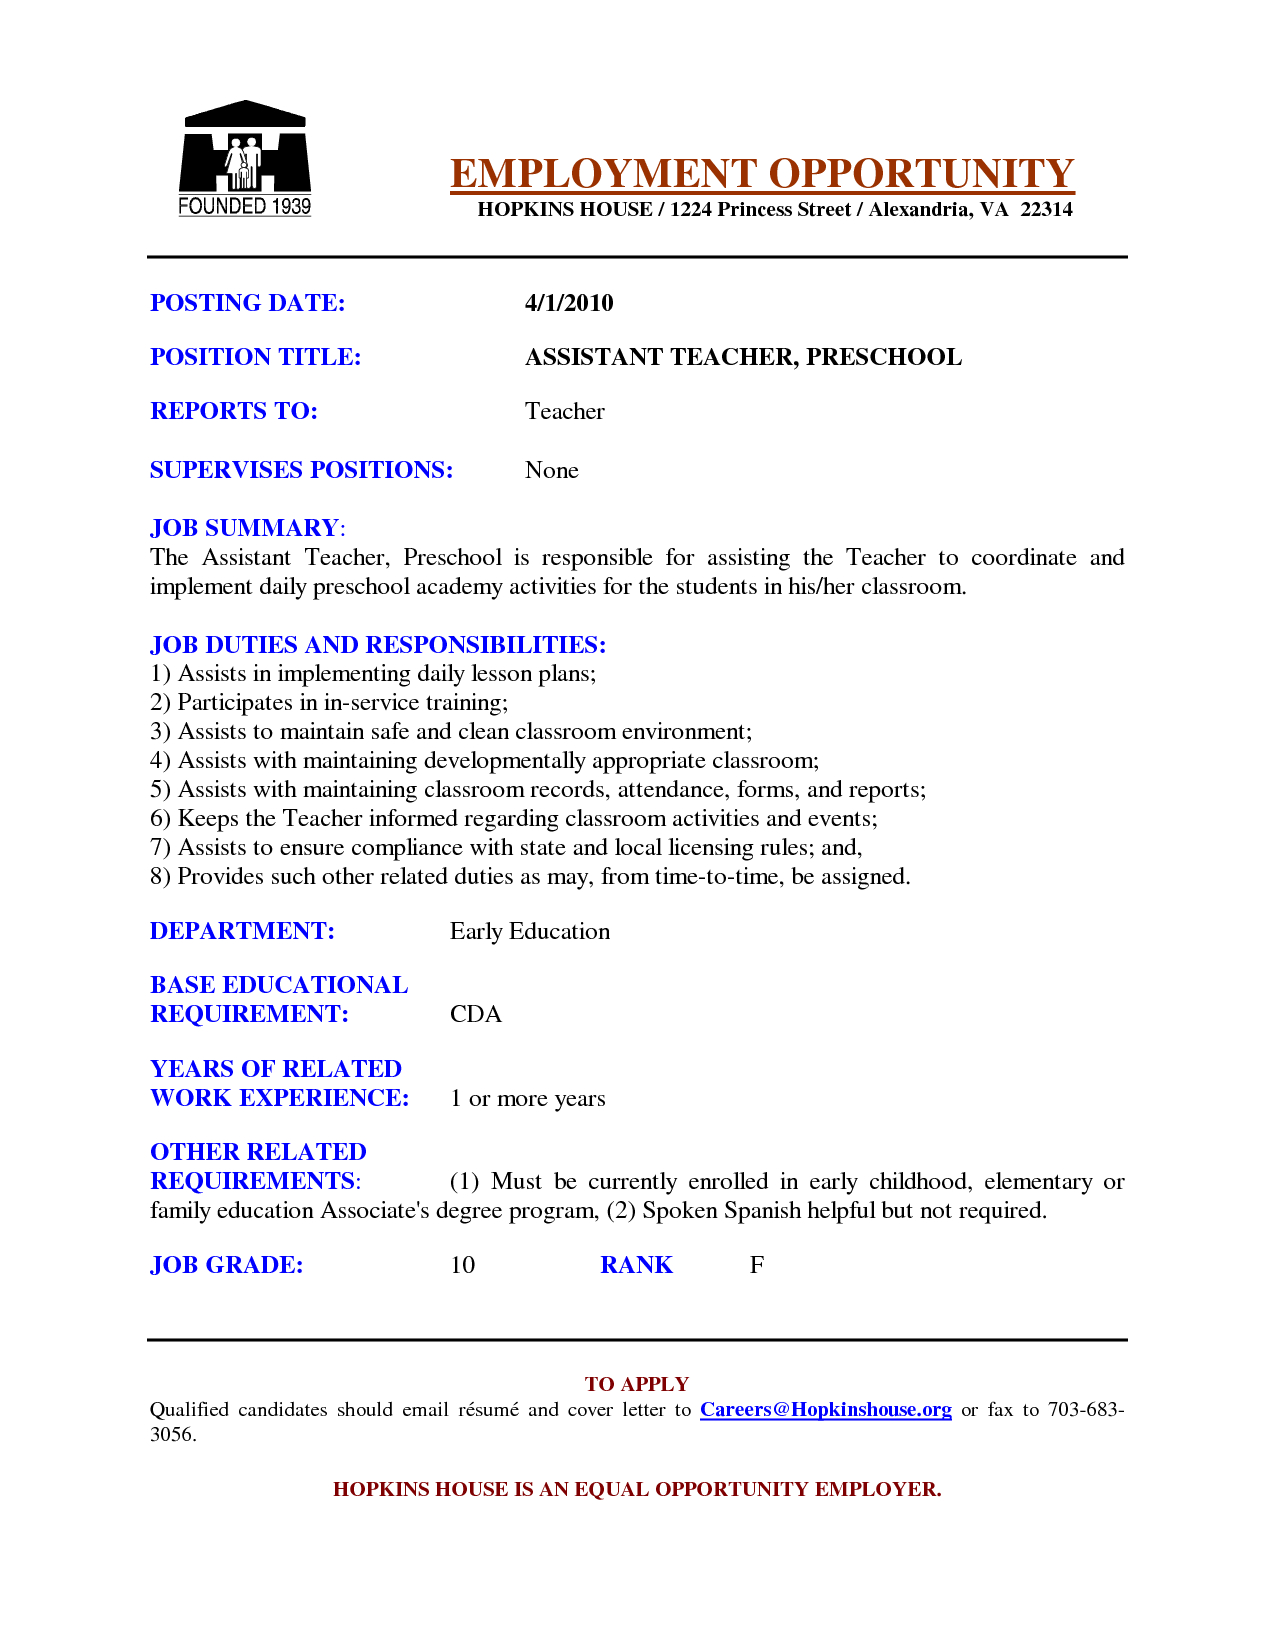 Cover Letter Template for Teachers Aide - Sample Cover Letters for Teachers Samples